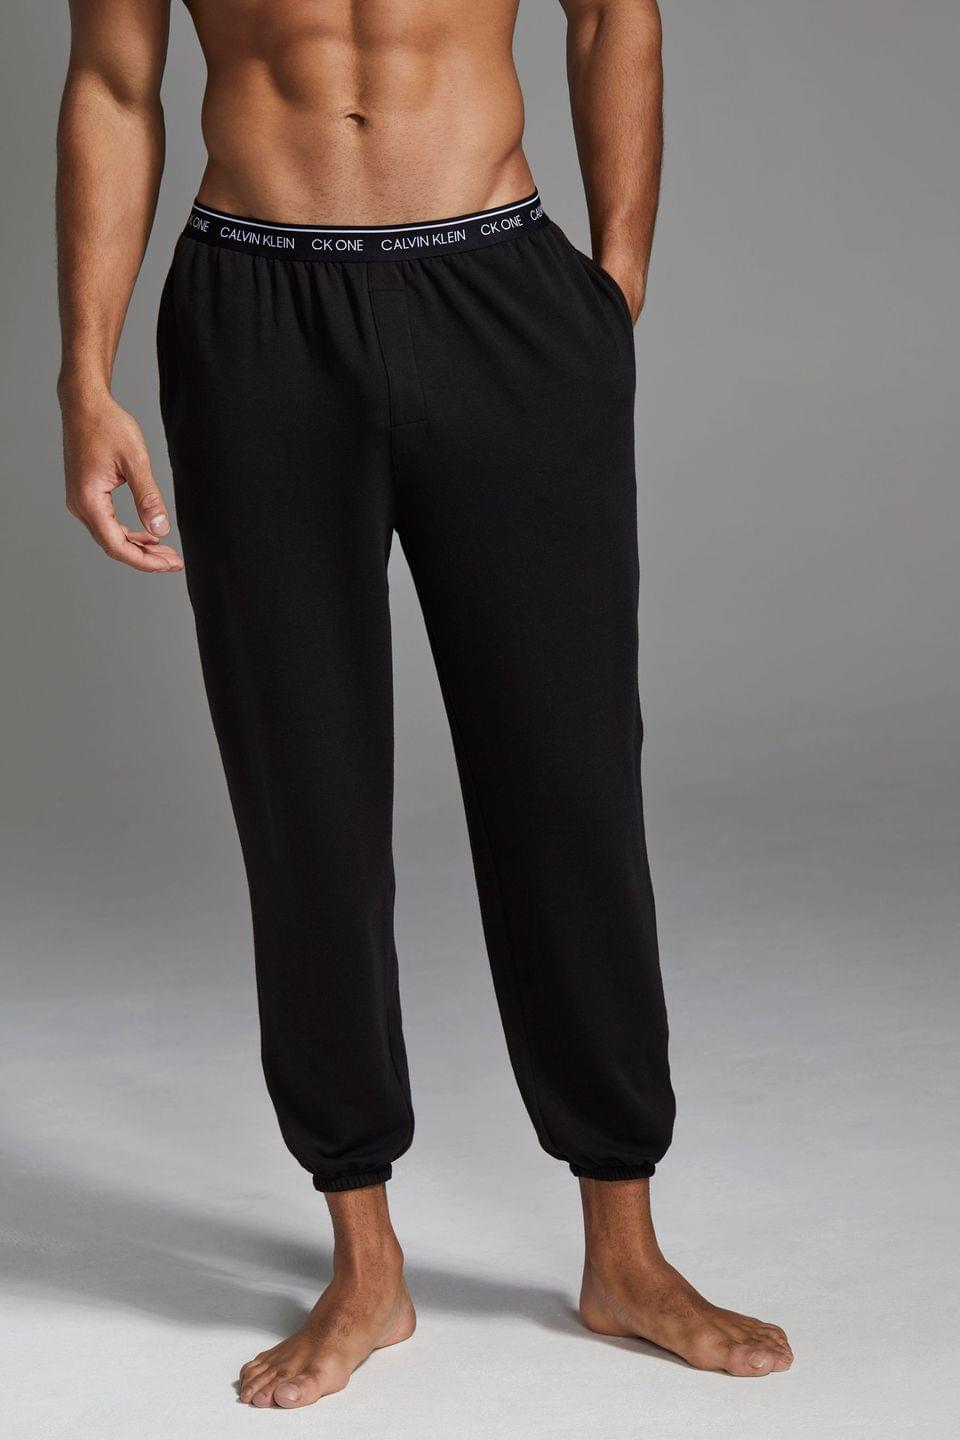 Men's Calvin Klein Black Loungewear Joggers